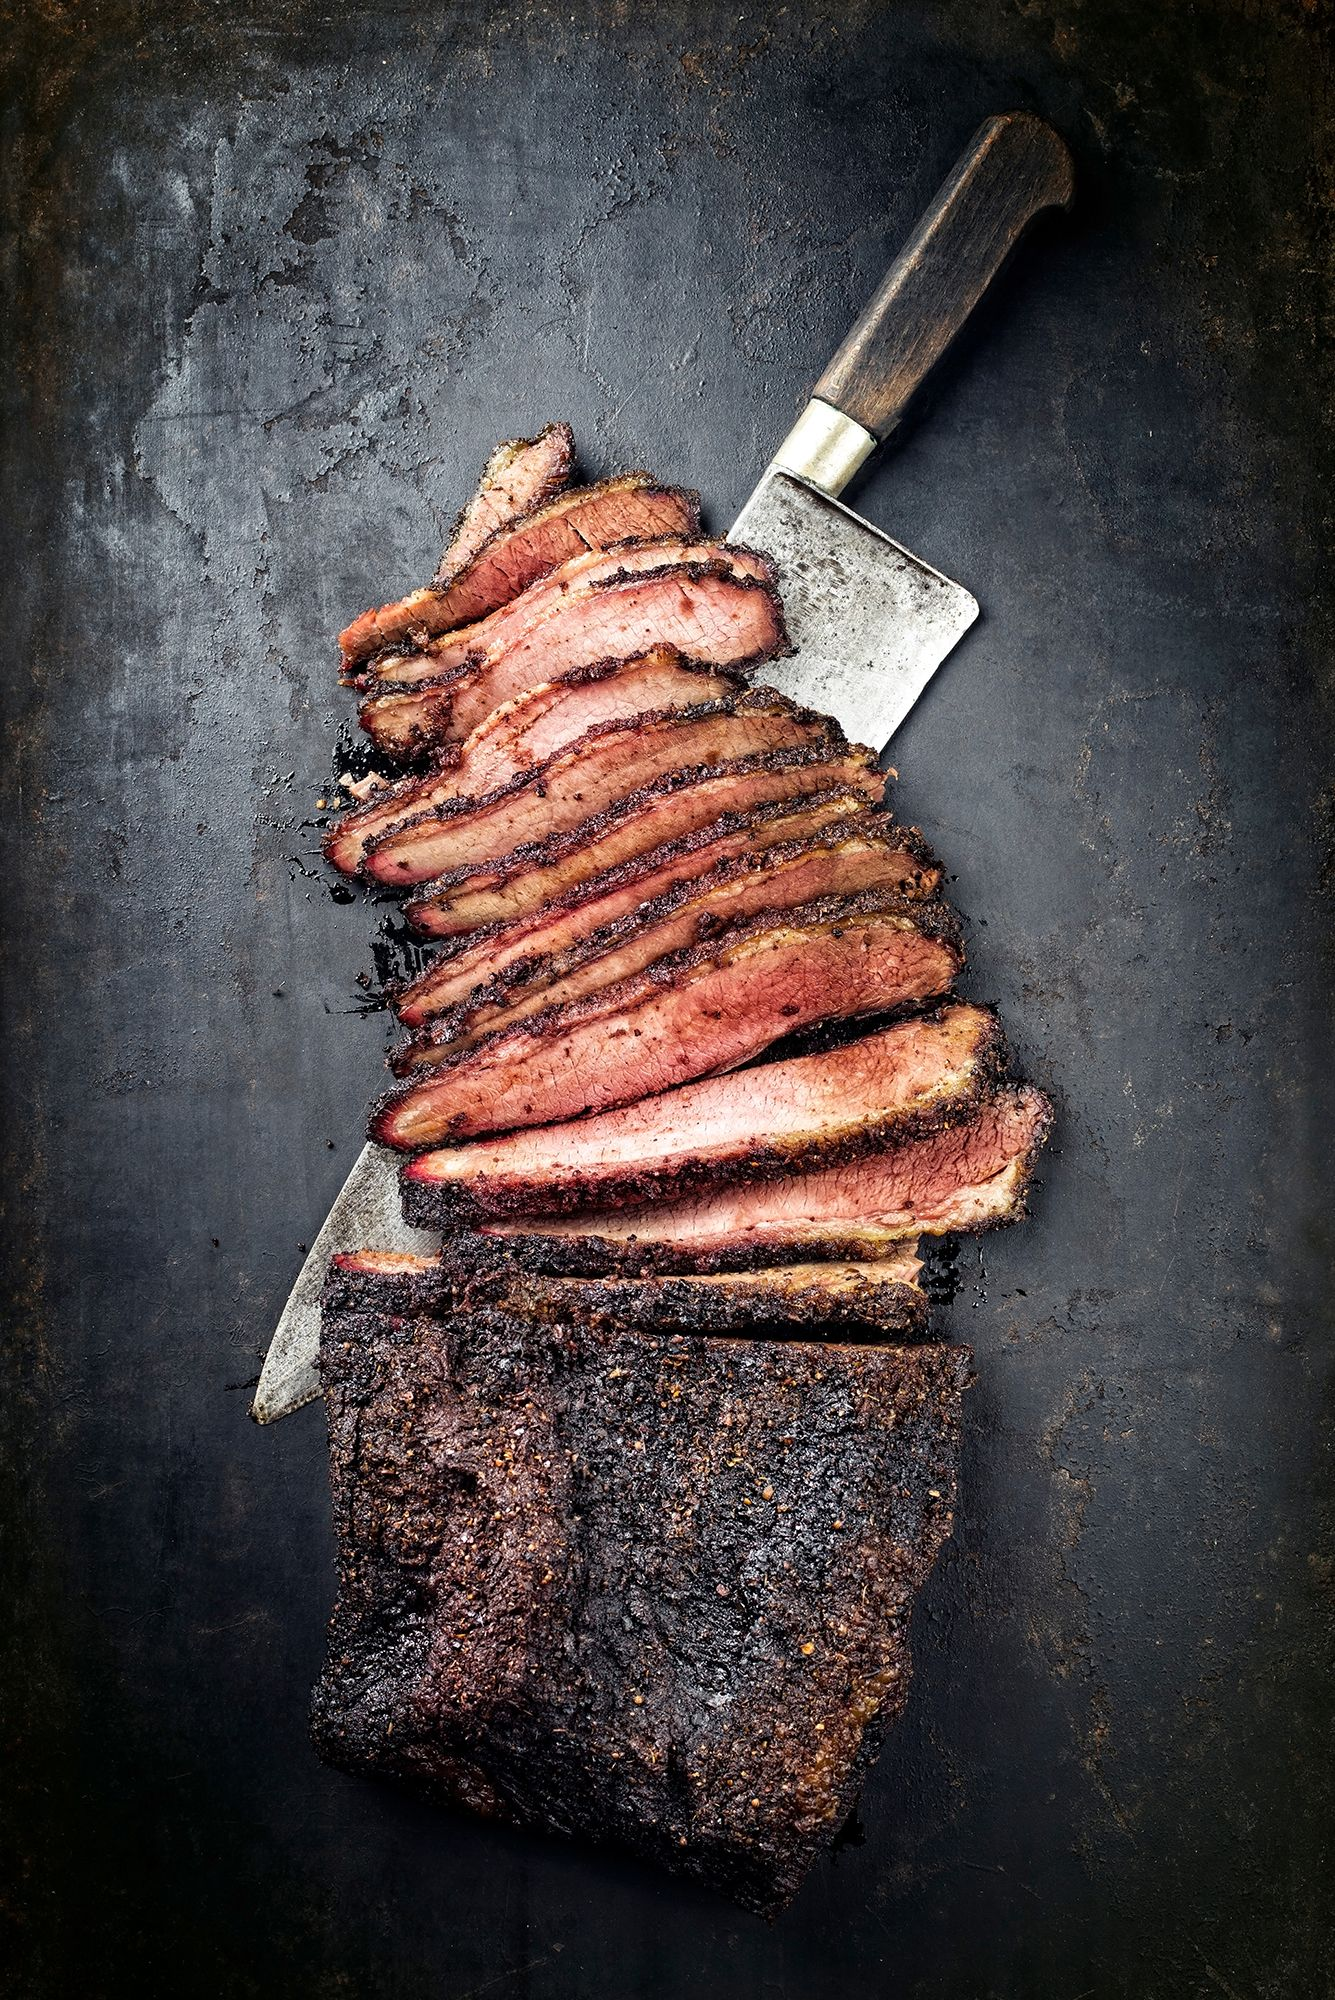 New Restaurant Alert: Smoke & Barrel Will Bring American Smokehouse Barbecue To Central